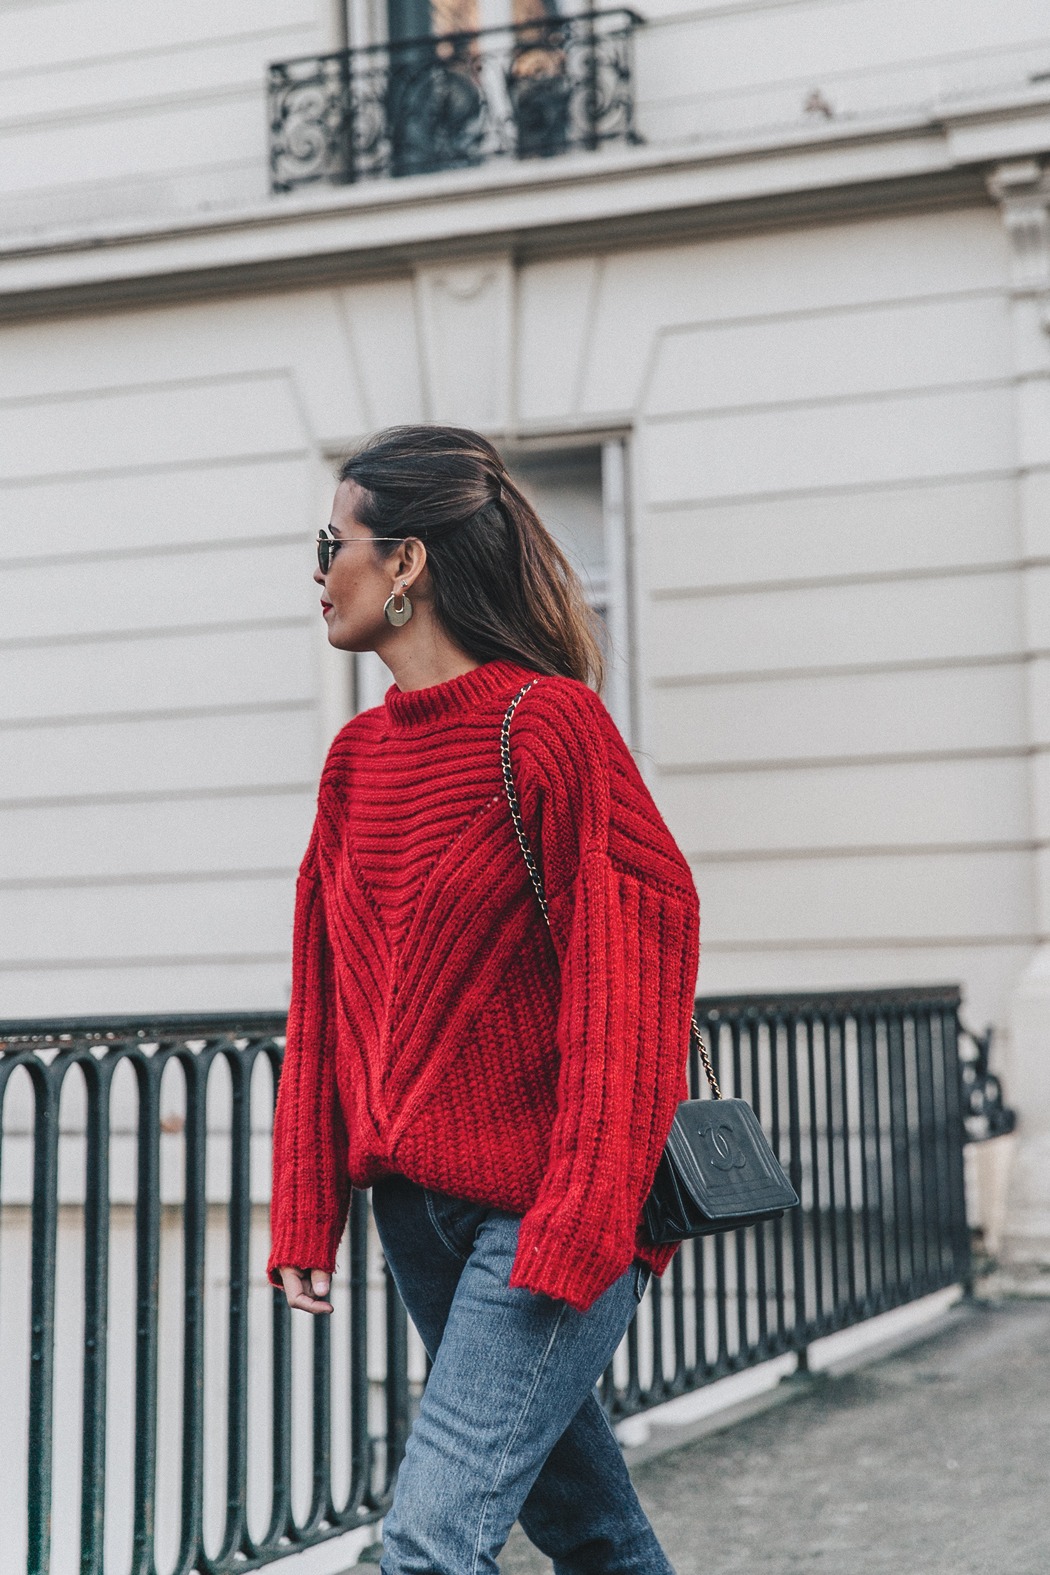 RED-KNITWEAR-Levis-Jeans-Red_Boots-Outfit-Street_Style-Levis_Vintage-12